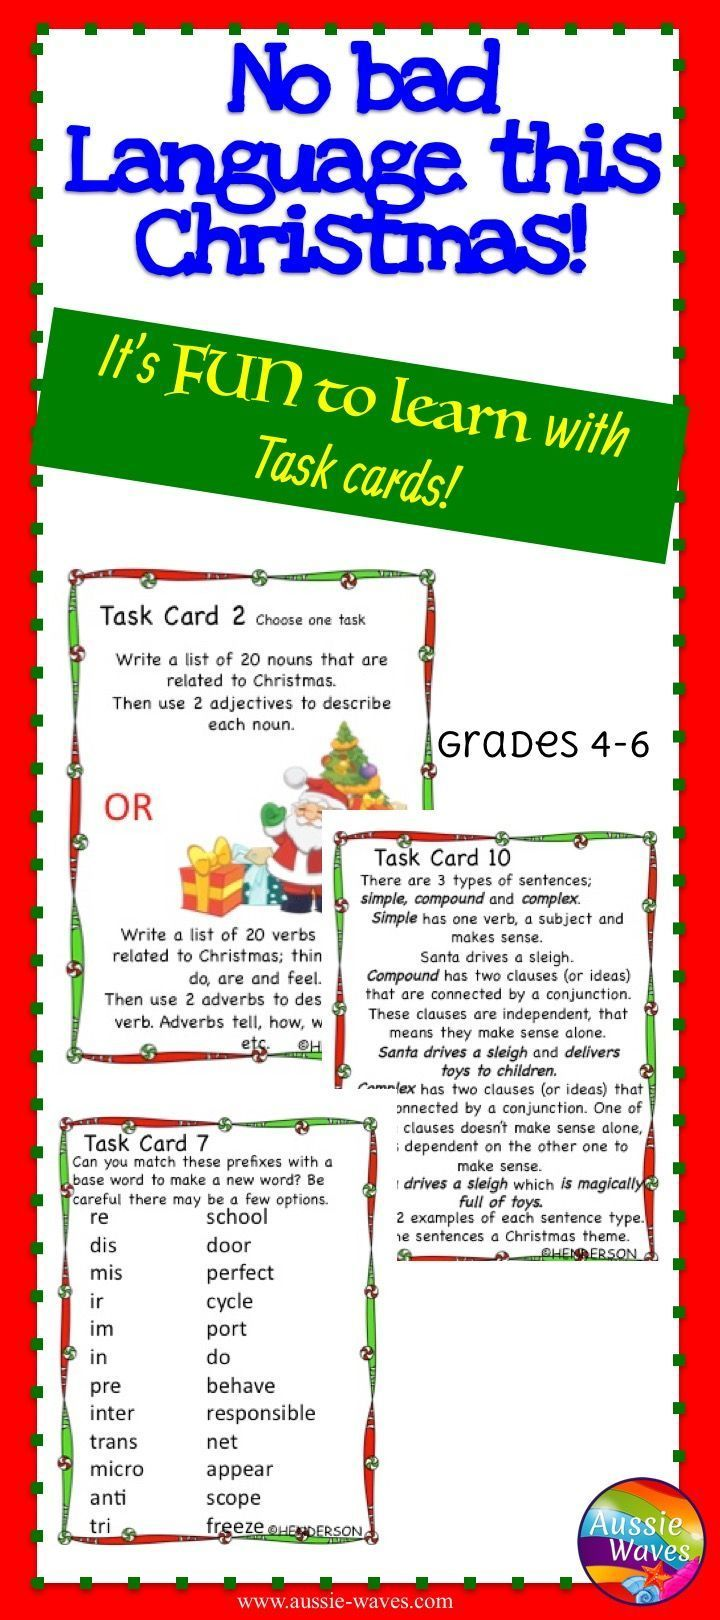 Christmas Activities for your students. Printable language tasks for centres. Have fun and learn at the same time!